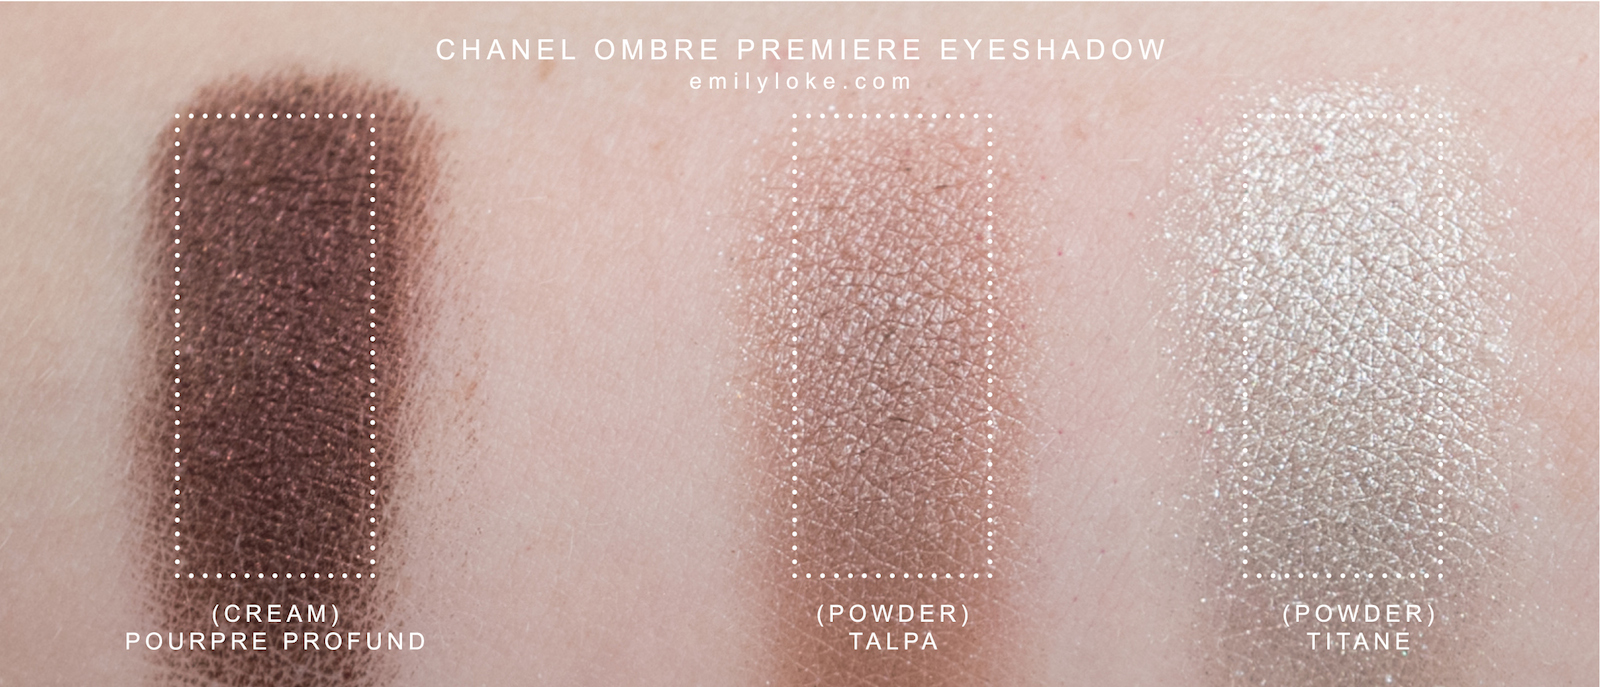 CHANEL ombre premiere eyeshadow swatch